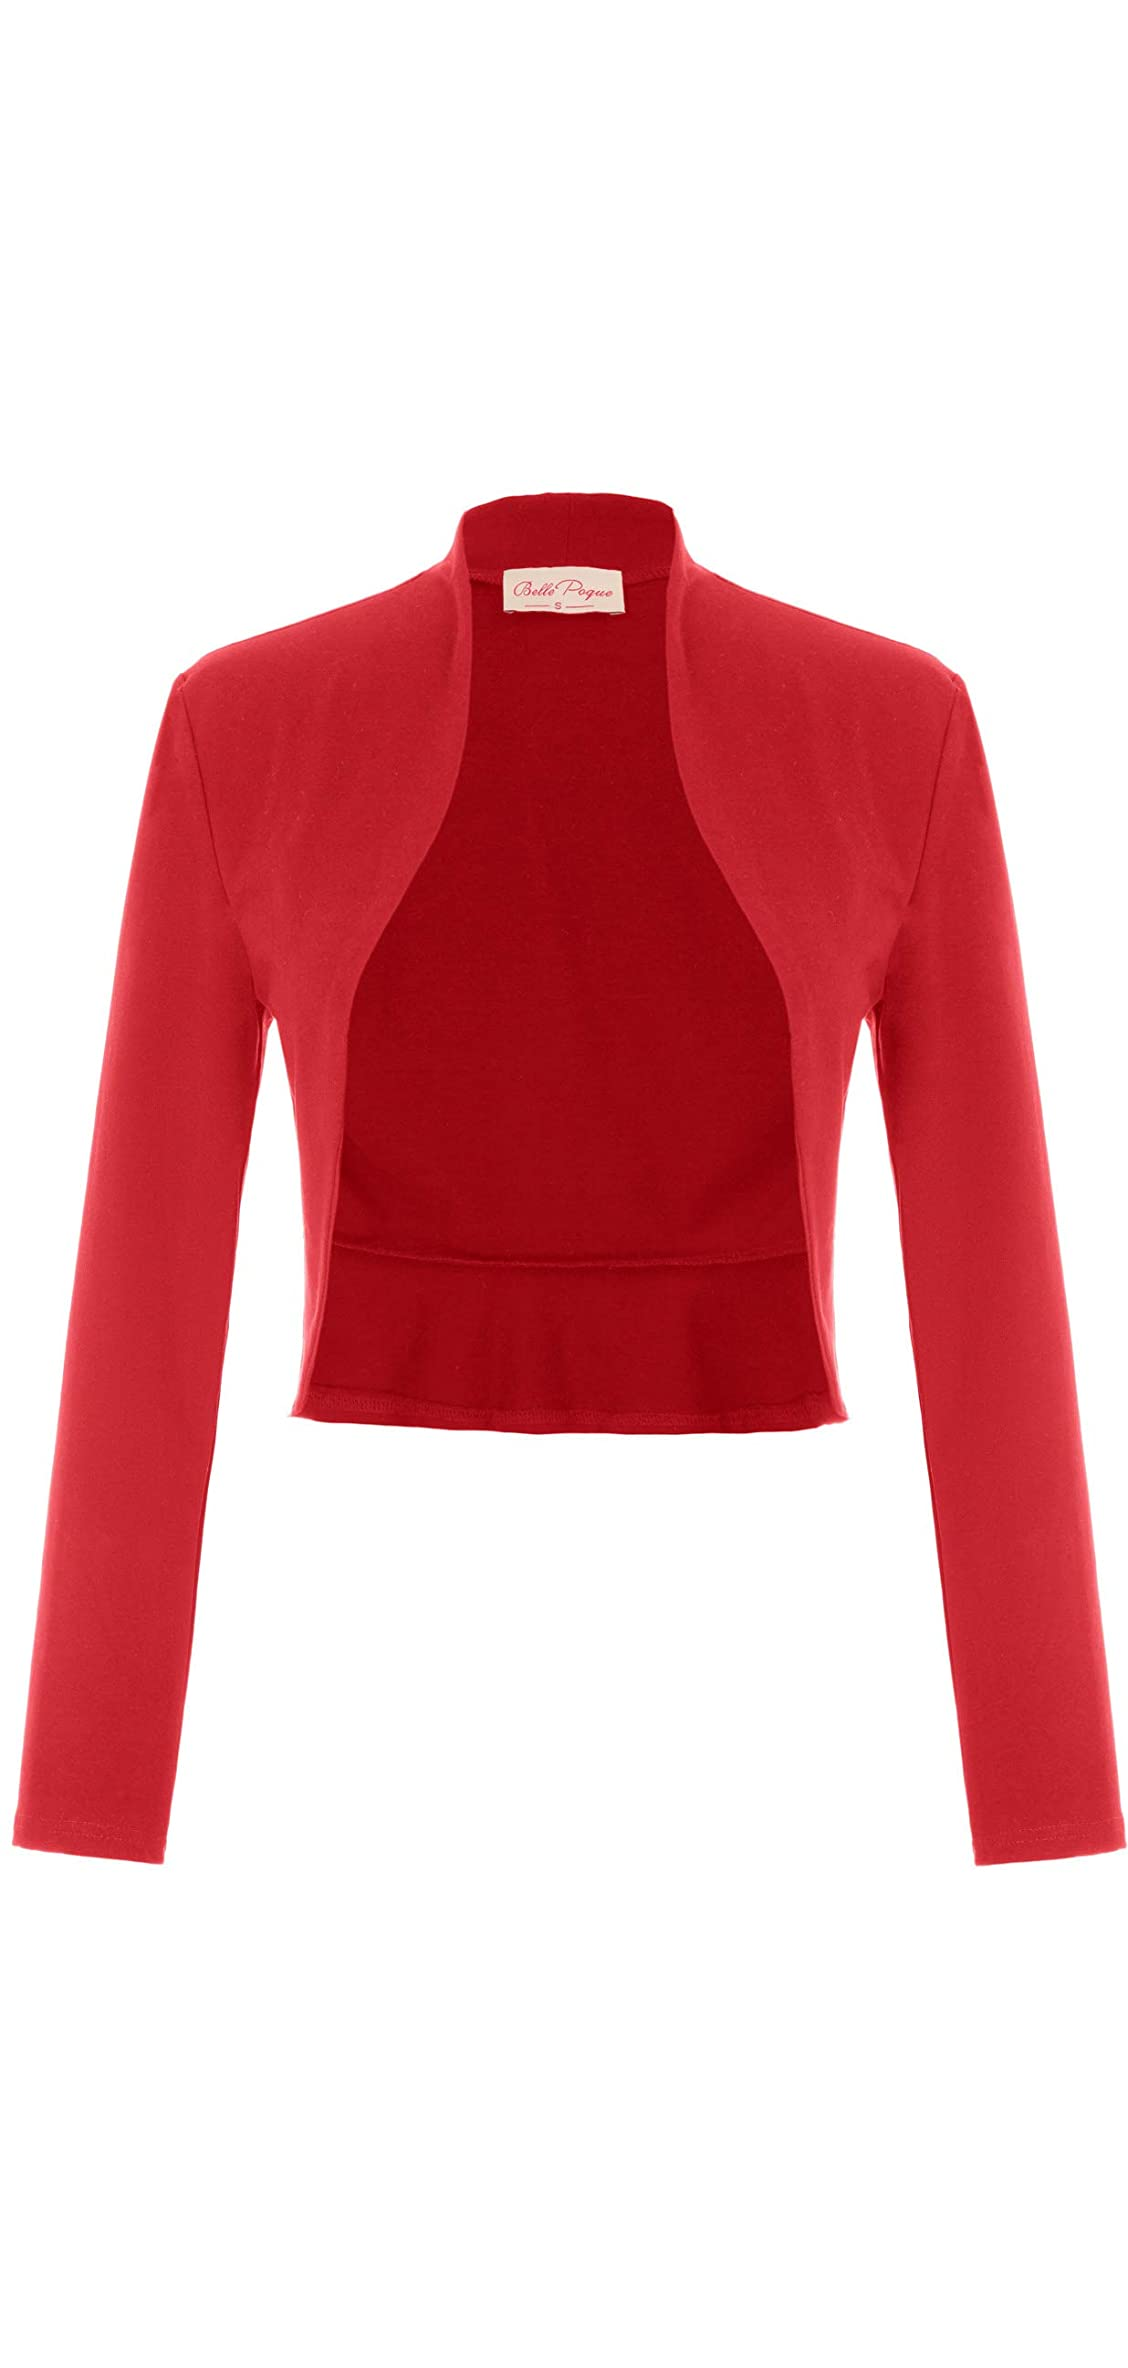 Women's Vintage Cropped Shrug Open Front Long Sleeve